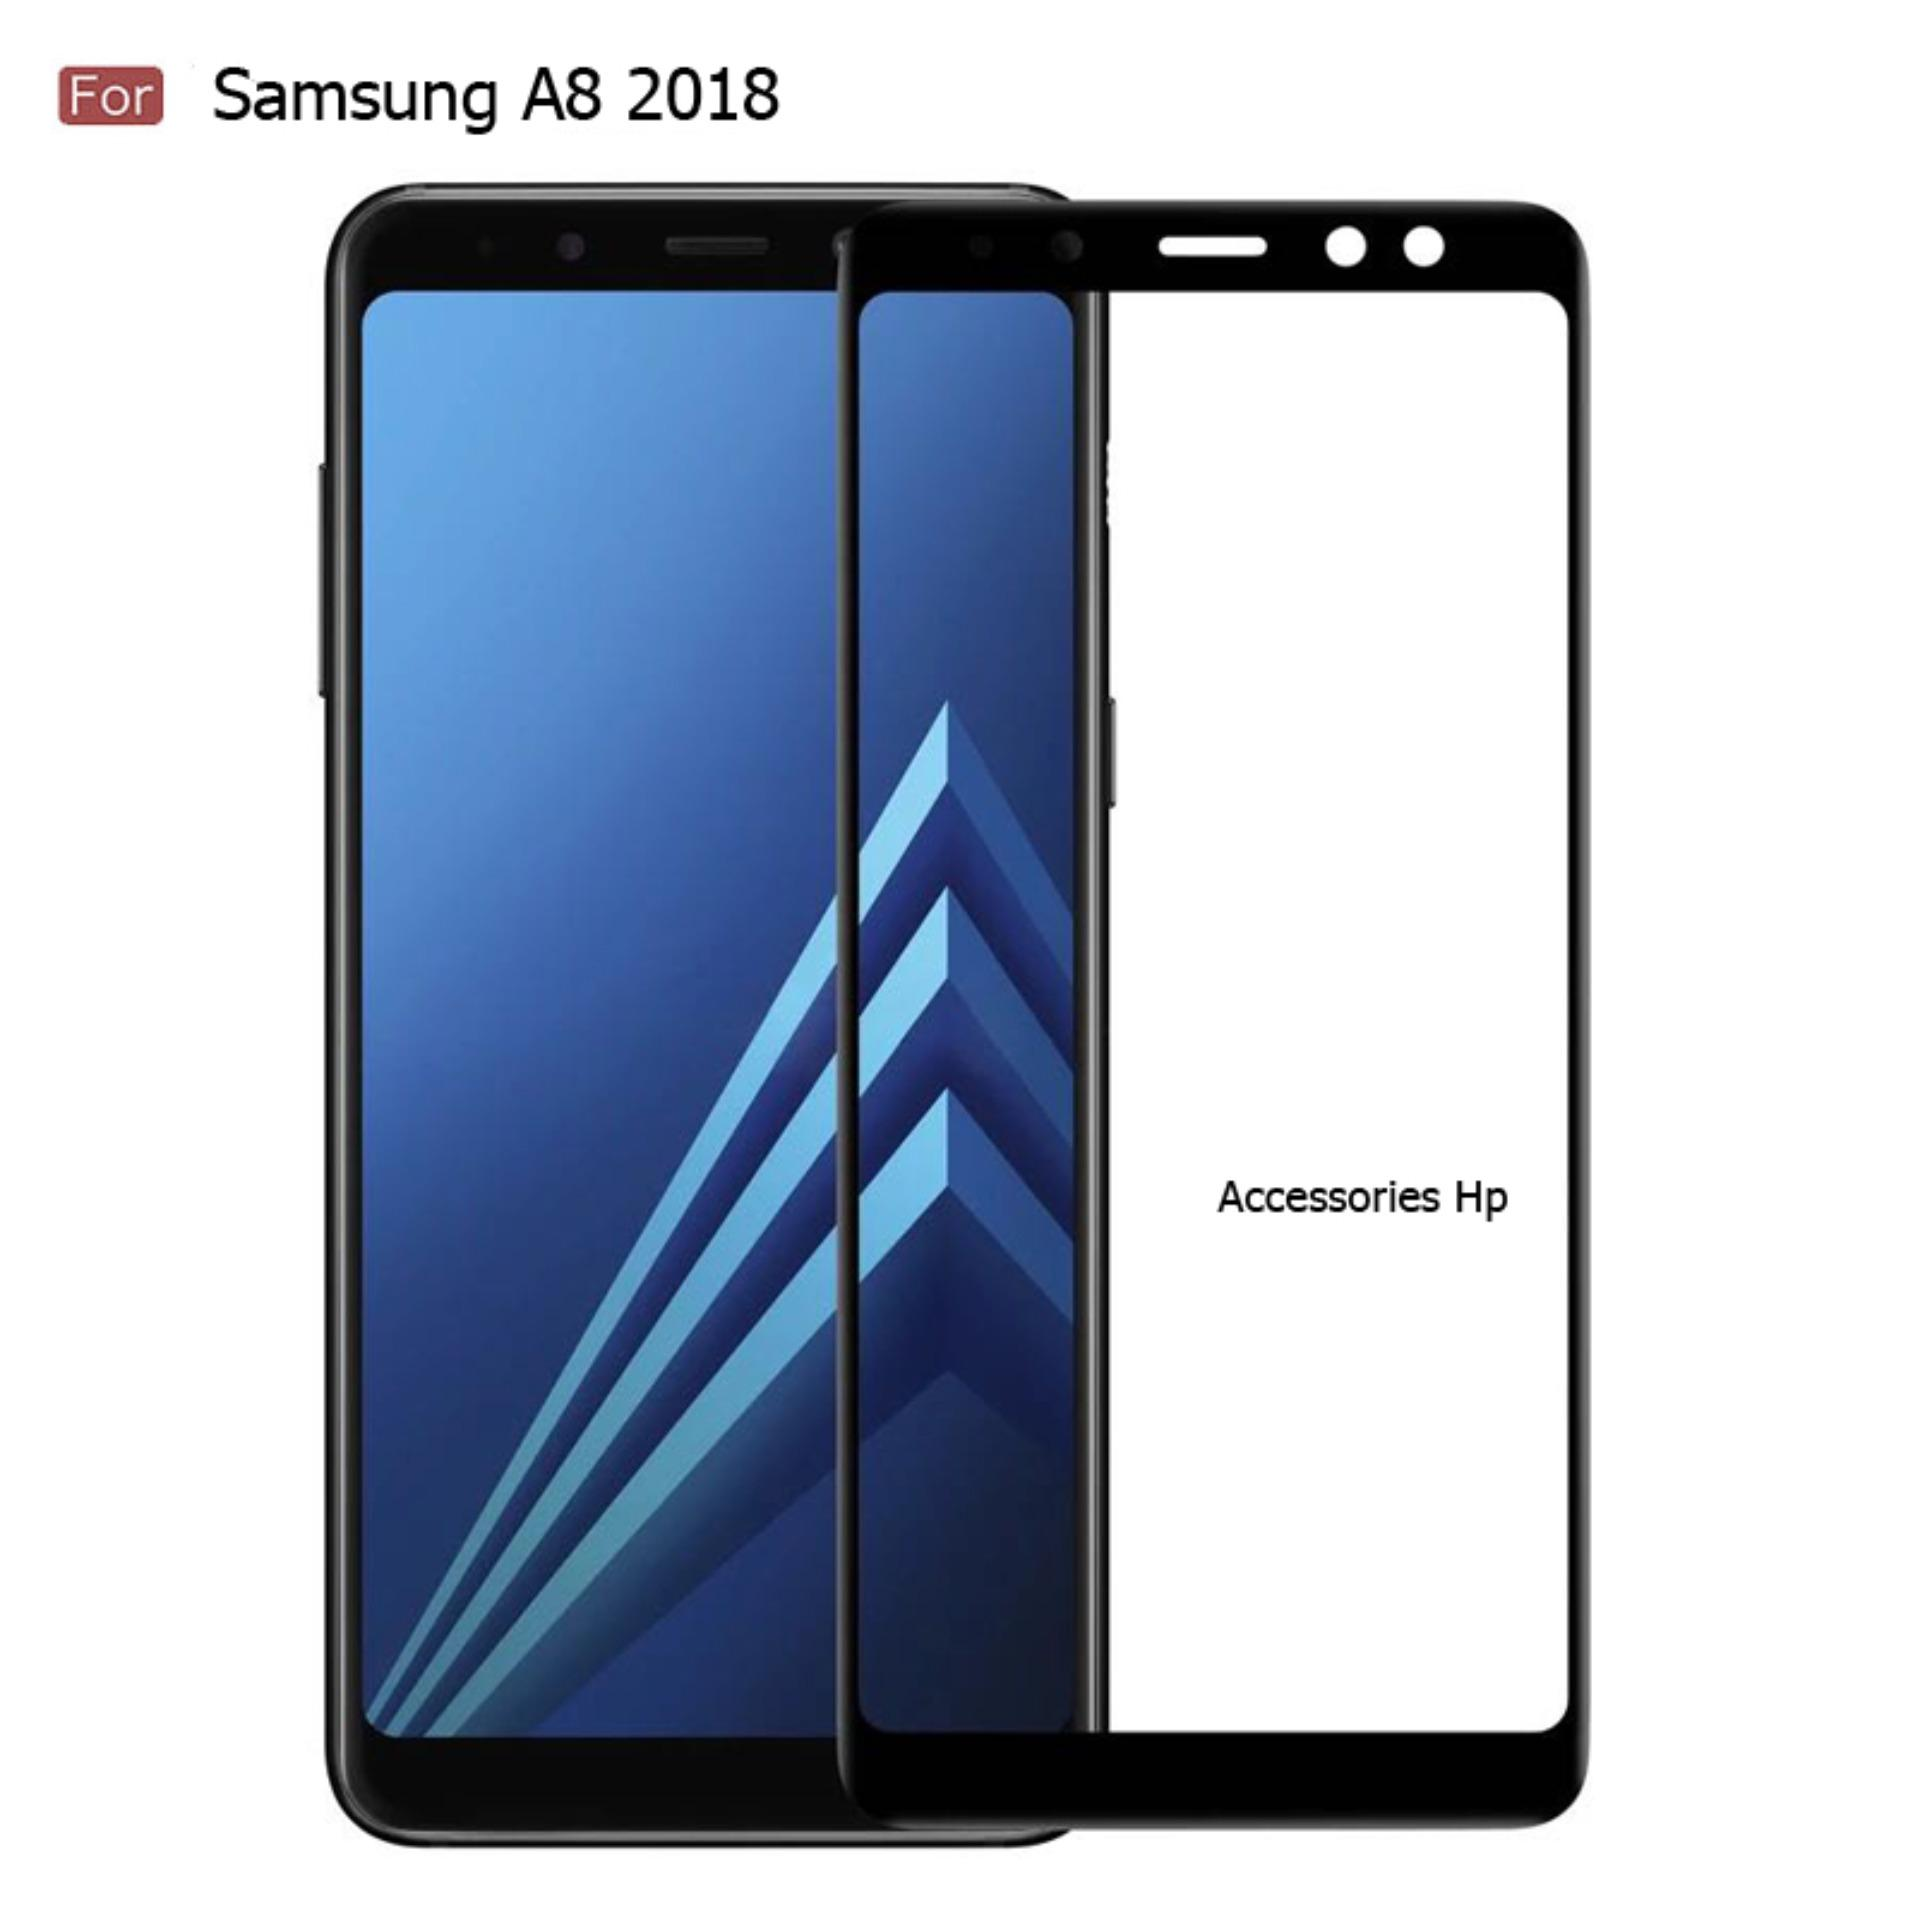 Accessories Hp 3D Full Cover Tempered Glass Warna Screen Protector Samsung Galaxy A8 2018 - Black